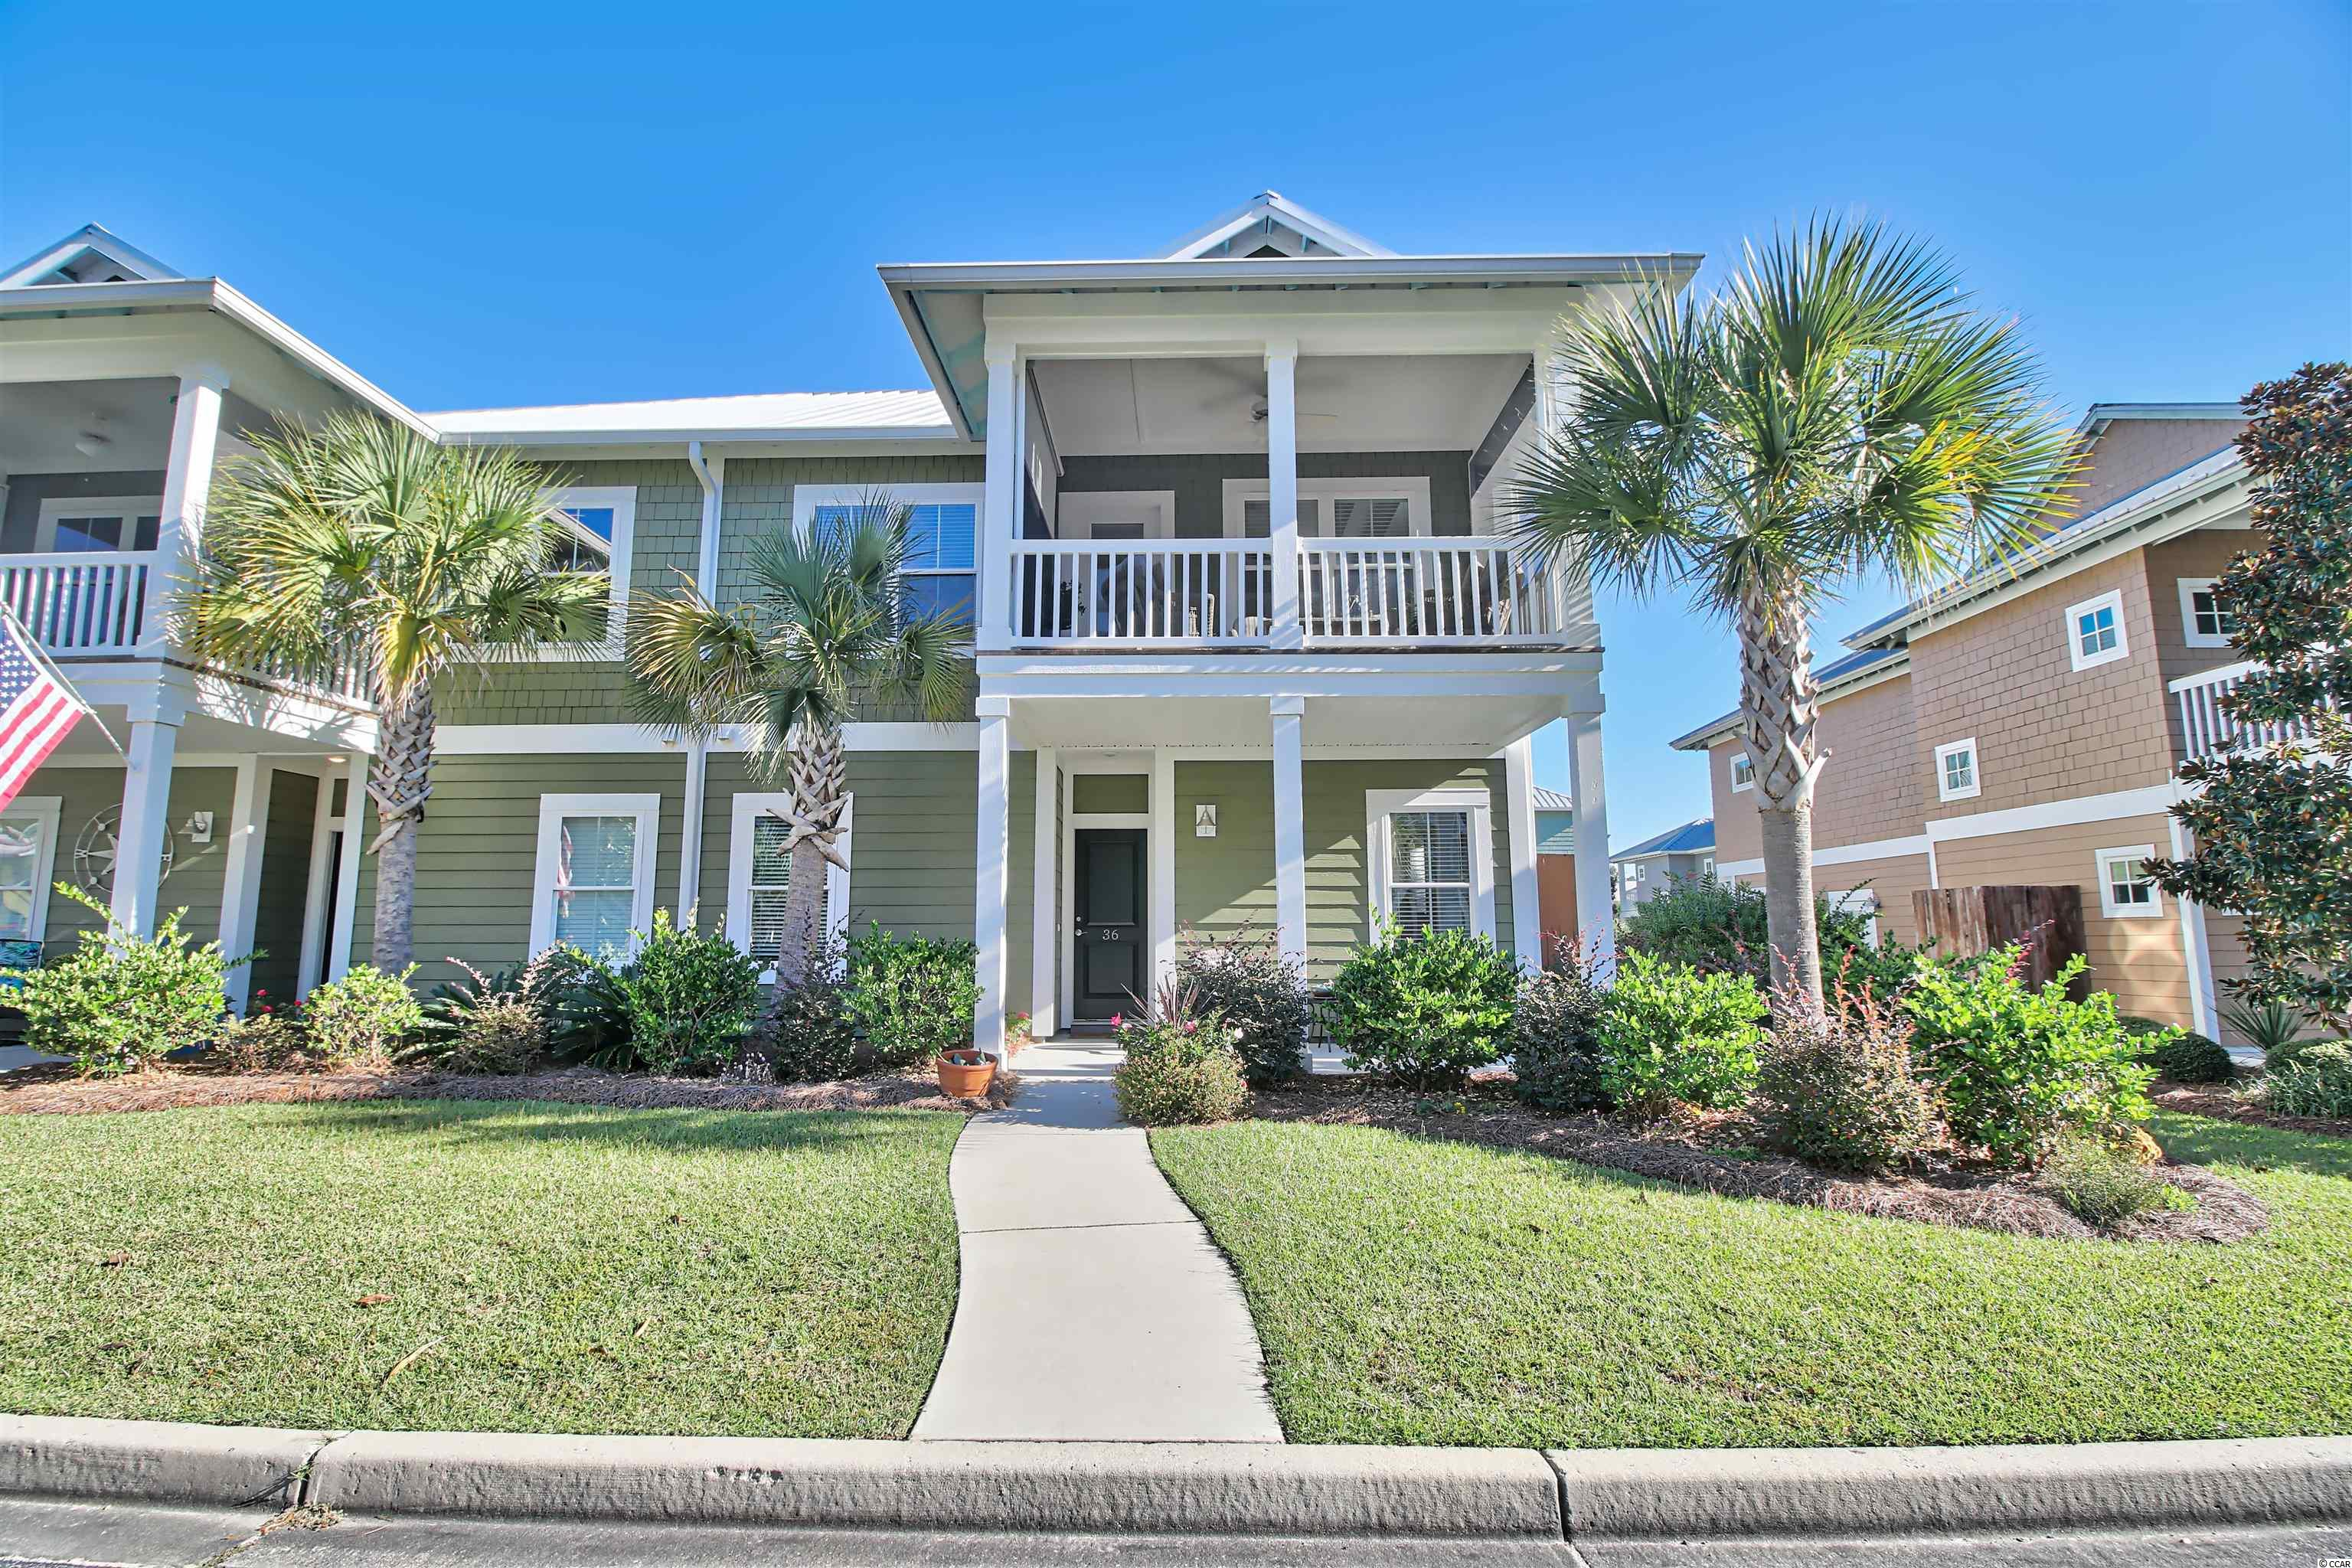 Beautiful Island Style home in one of the best locations in Pawleys Island. You feel tucked away in a quiet neighborhood with your own beautiful community pool, while you are actually walking distance to nearby restaurants, shopping, spa, library, fitness center, and bike & jogging paths. Golf courses, marinas and beautiful sandy beaches are minutes away. Myrtle Beach is just 20 miles north and Historic Charleston is 75 miles south of this historic beach resort area. This townhouse still looks brand new and has all the bells and whistles including gas fireplace, kitchen backsplash, screened porch, epoxy garage floor and ceiling garage storage shelves. Don't miss out on this beautiful townhouse in this highly sought after neighborhood.